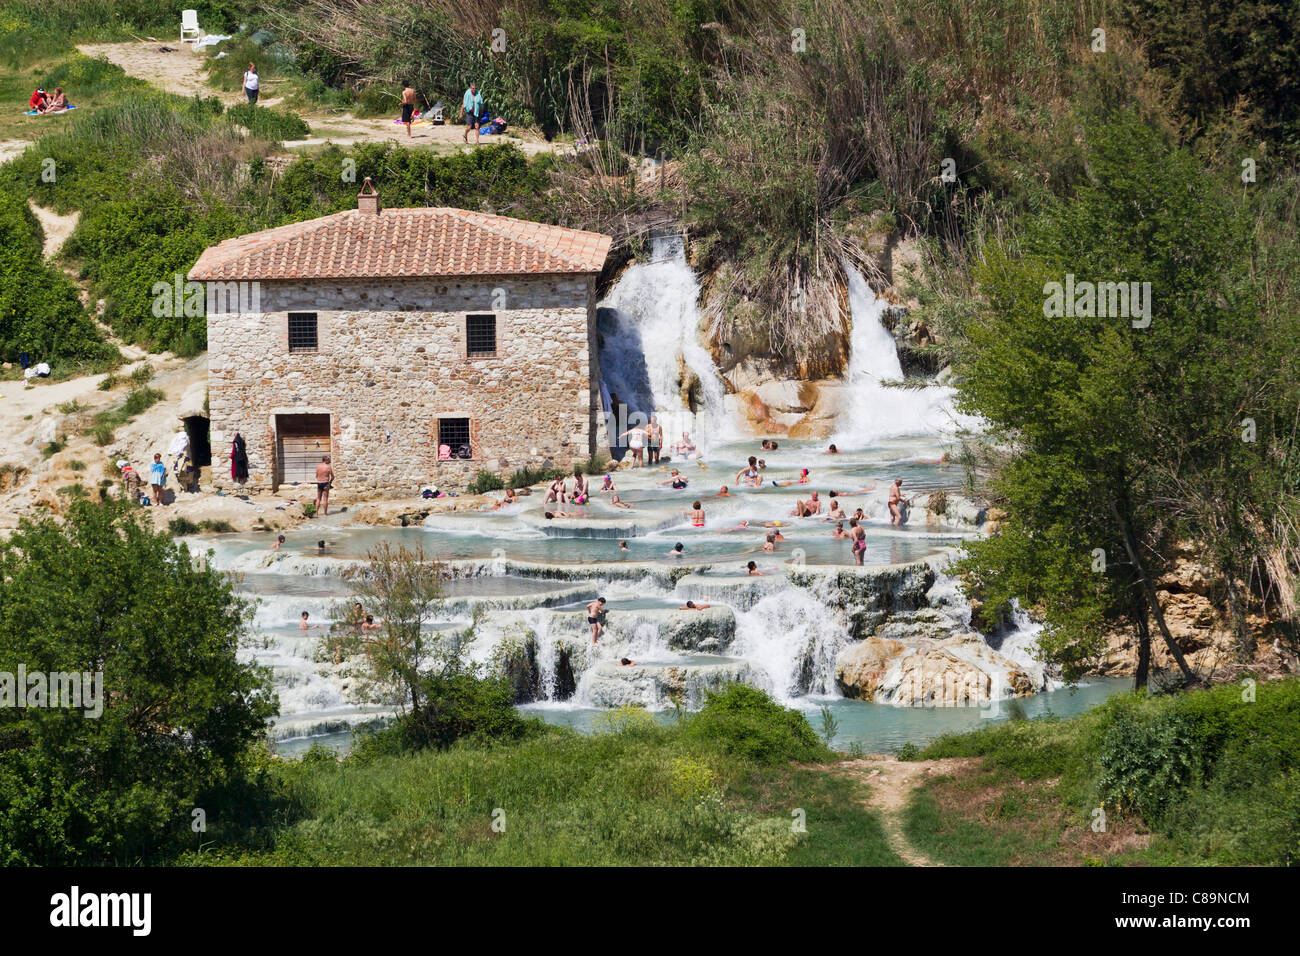 Italy, Tuscany, Province of Grosseto, Saturnia, View of people at thermal waterfalls and travertine pool - Stock Image